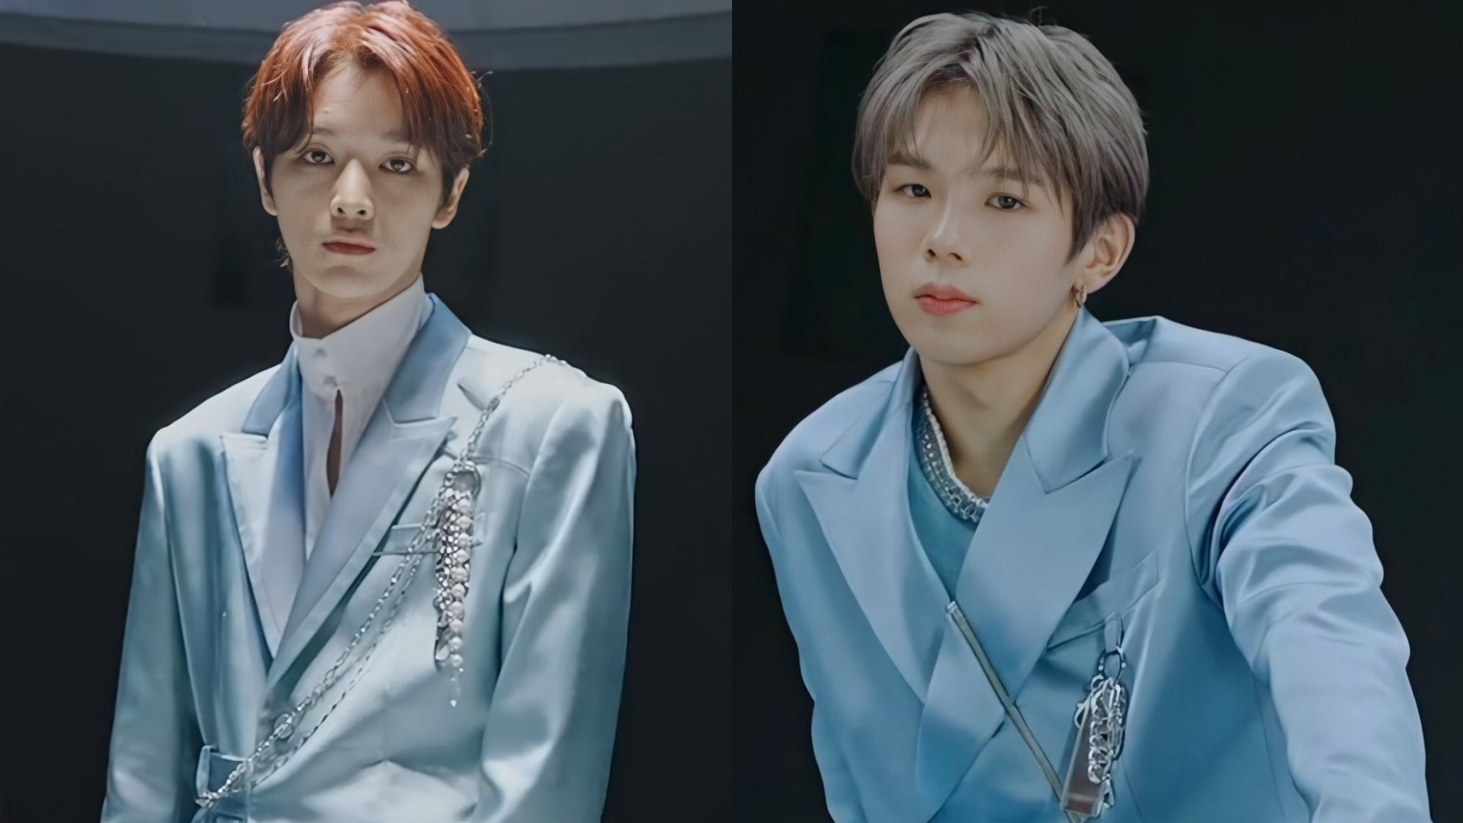 Some Netizens Doubt The Roles of The Two New Members of NCT, Sungchan and Shotaro